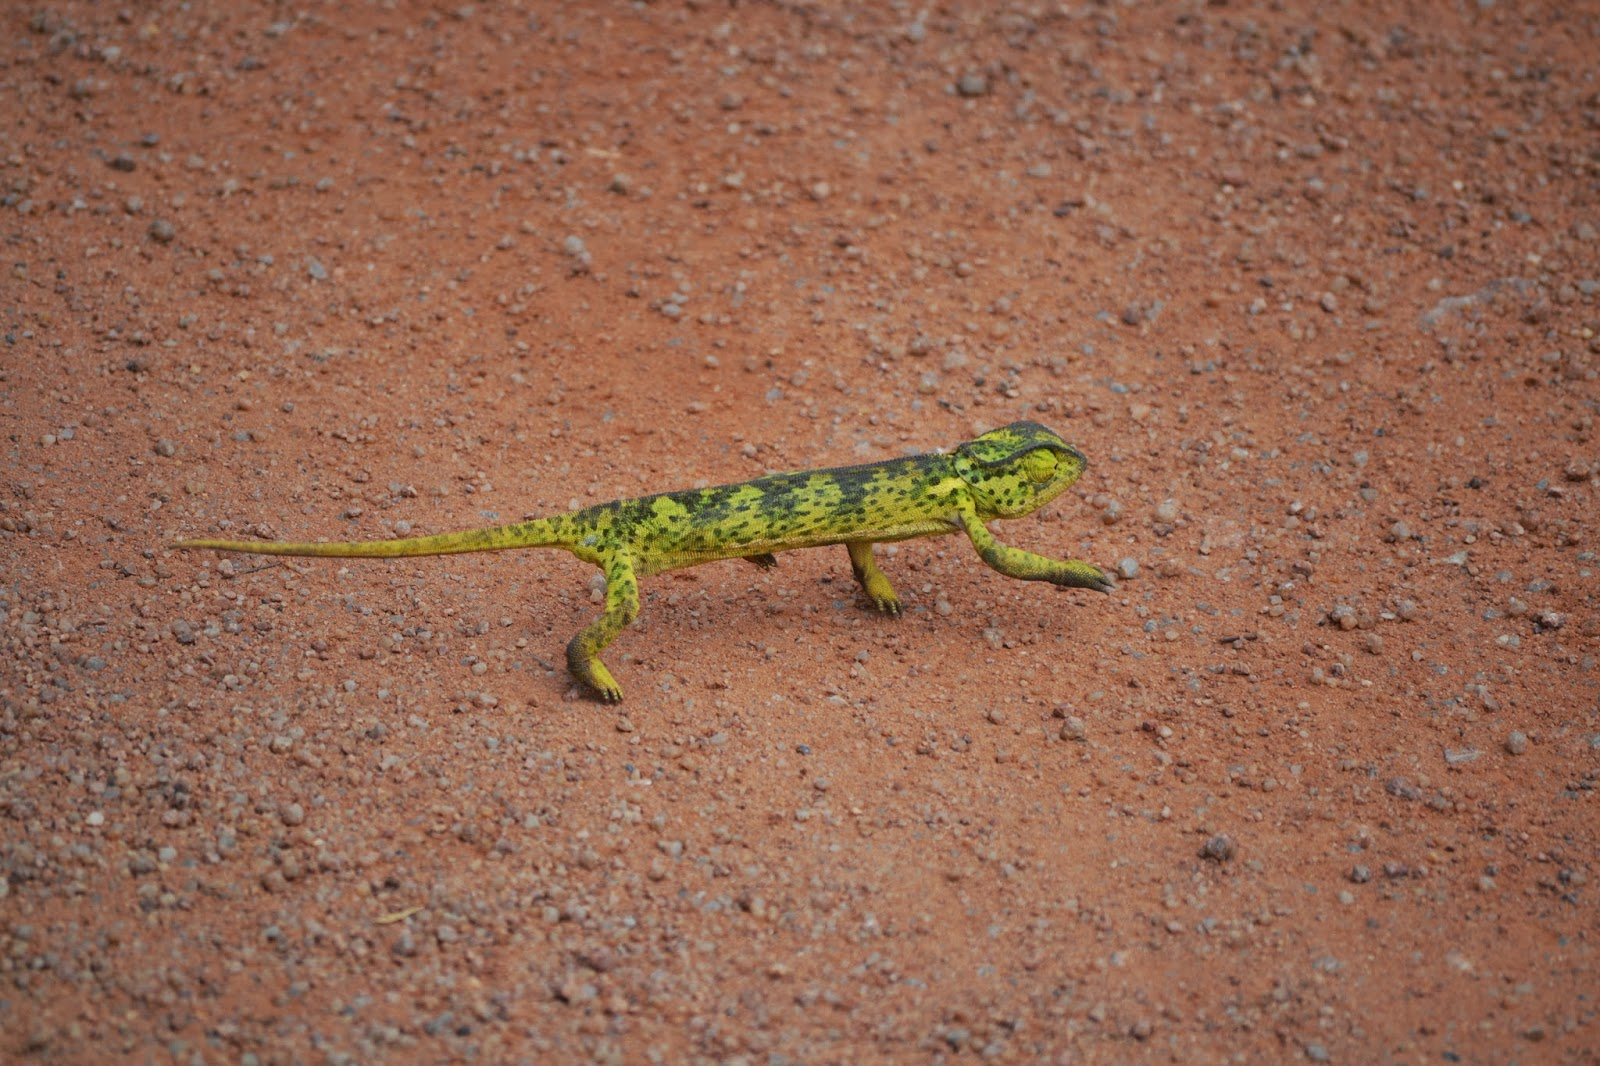 Chameleon crossing dirt road